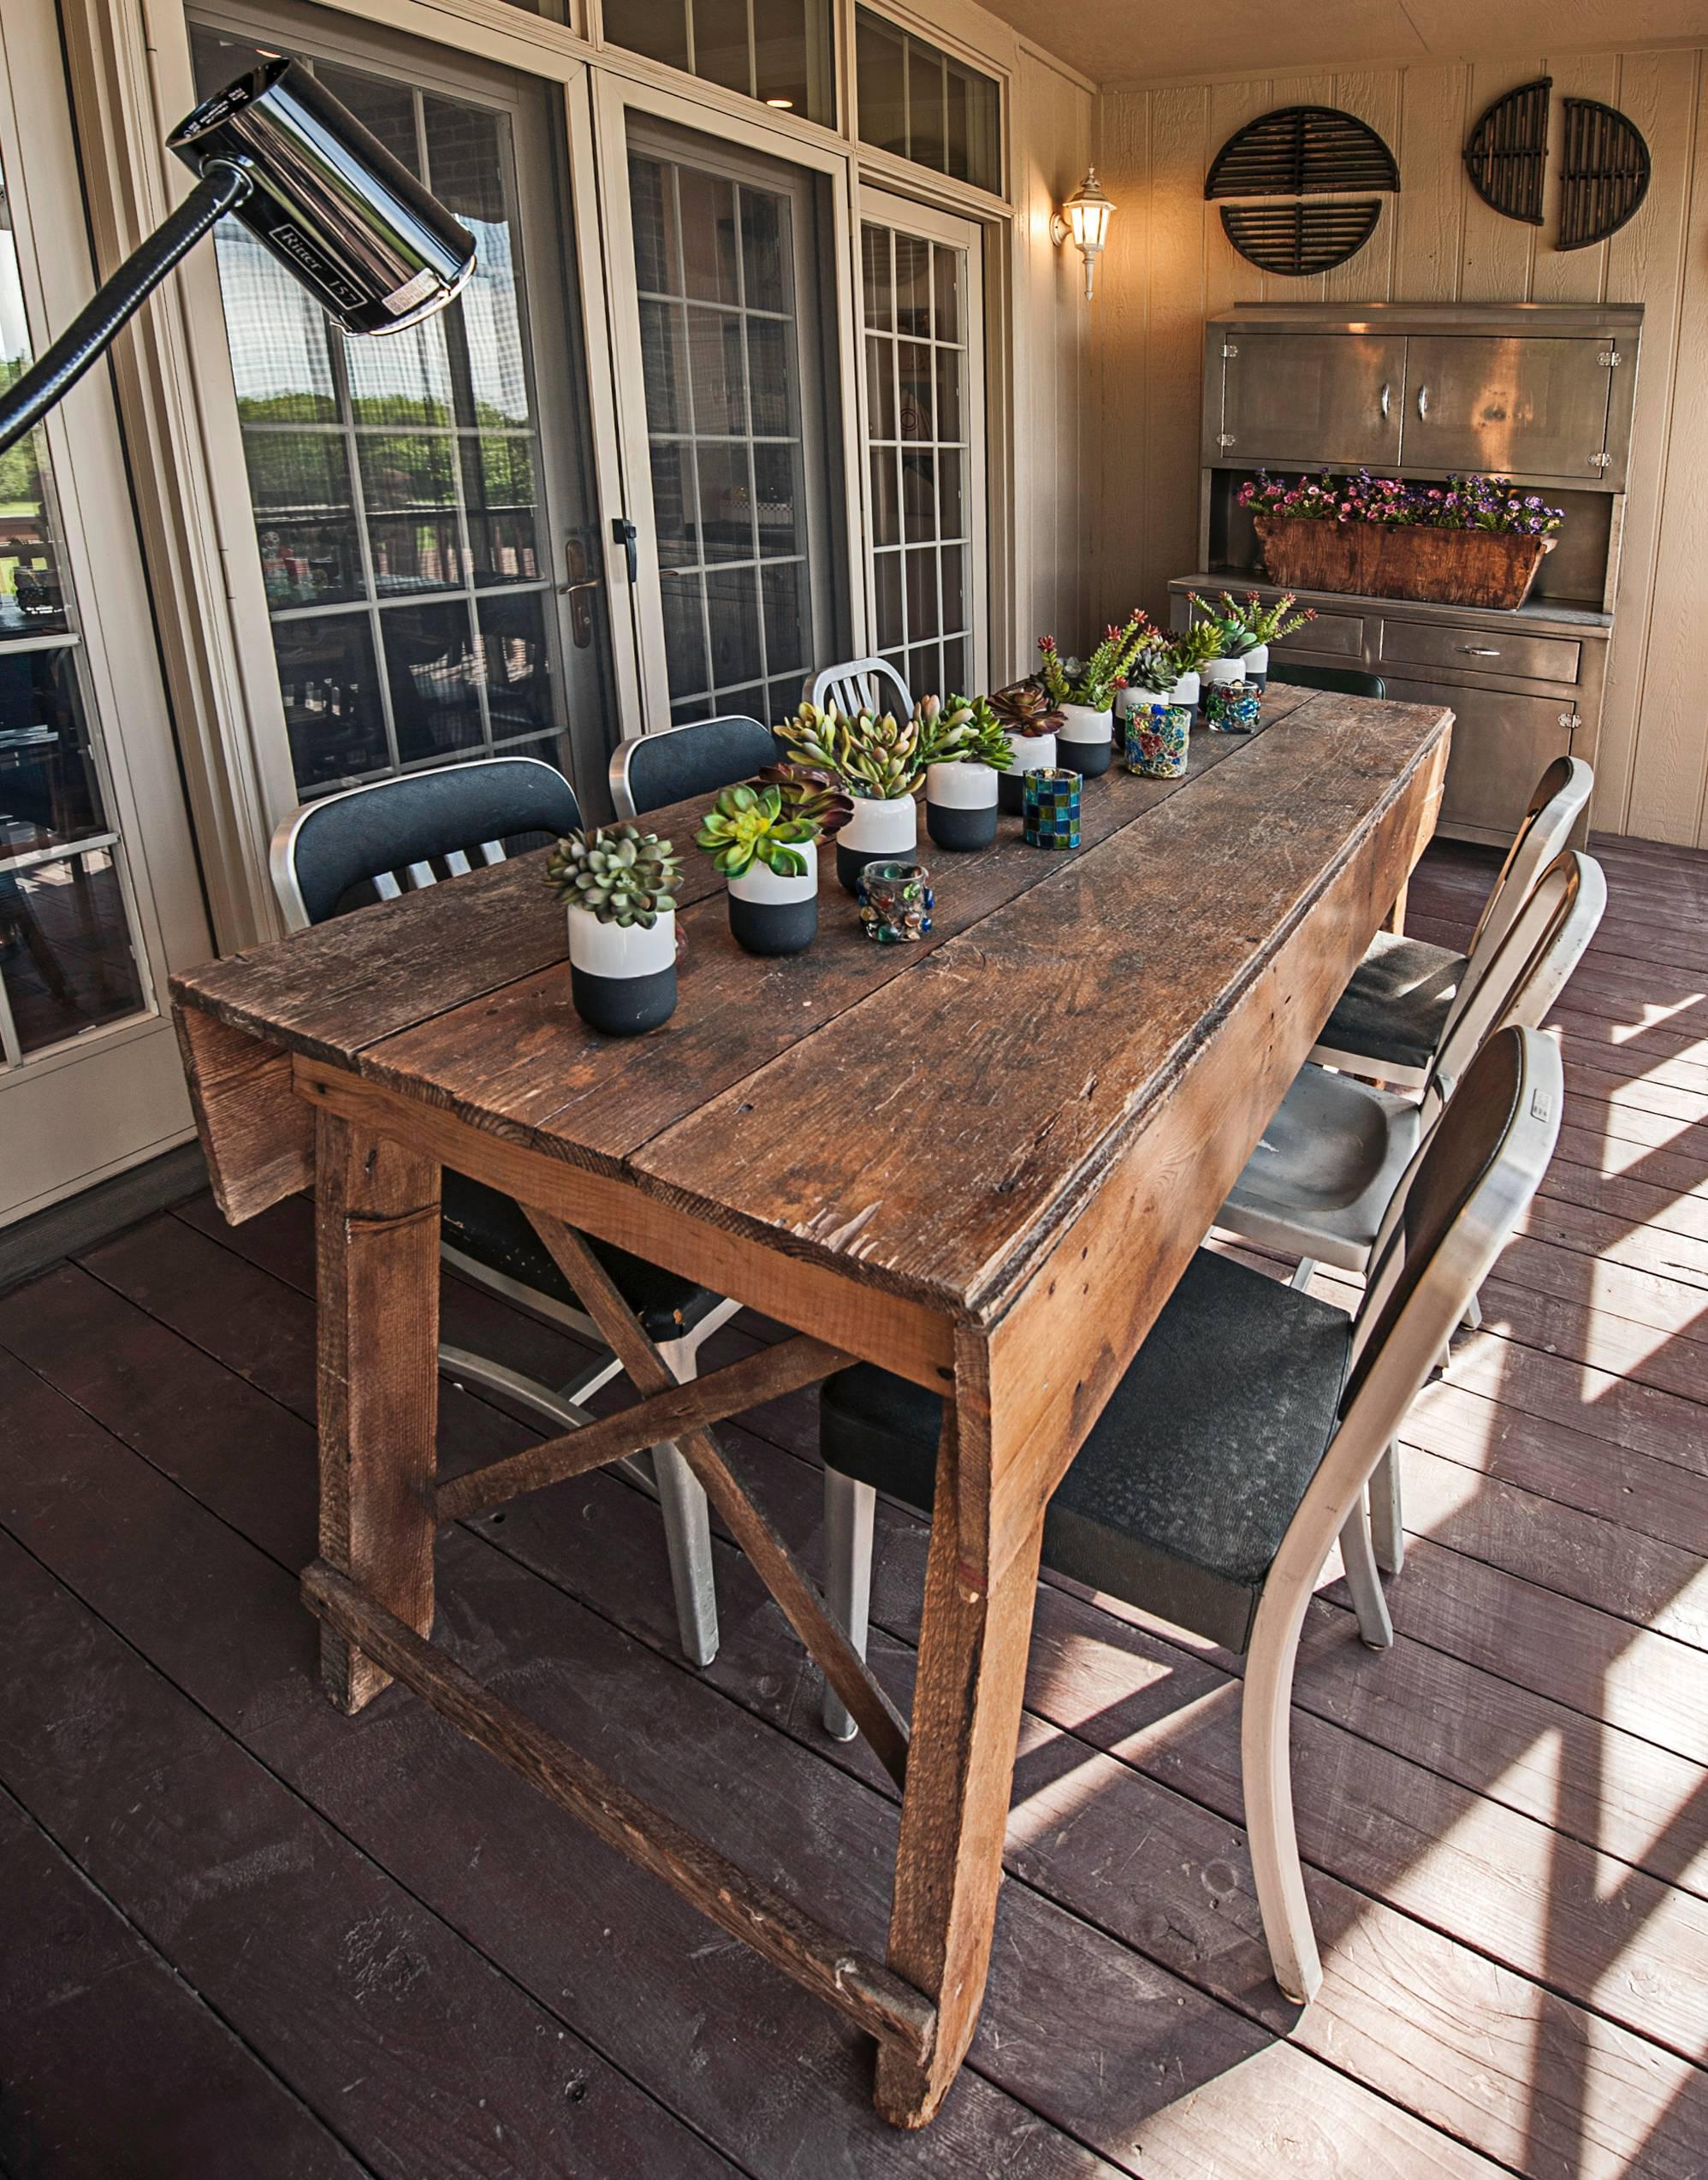 Primitive Industrial Farmhouse Style Dining Table Workbench with ...